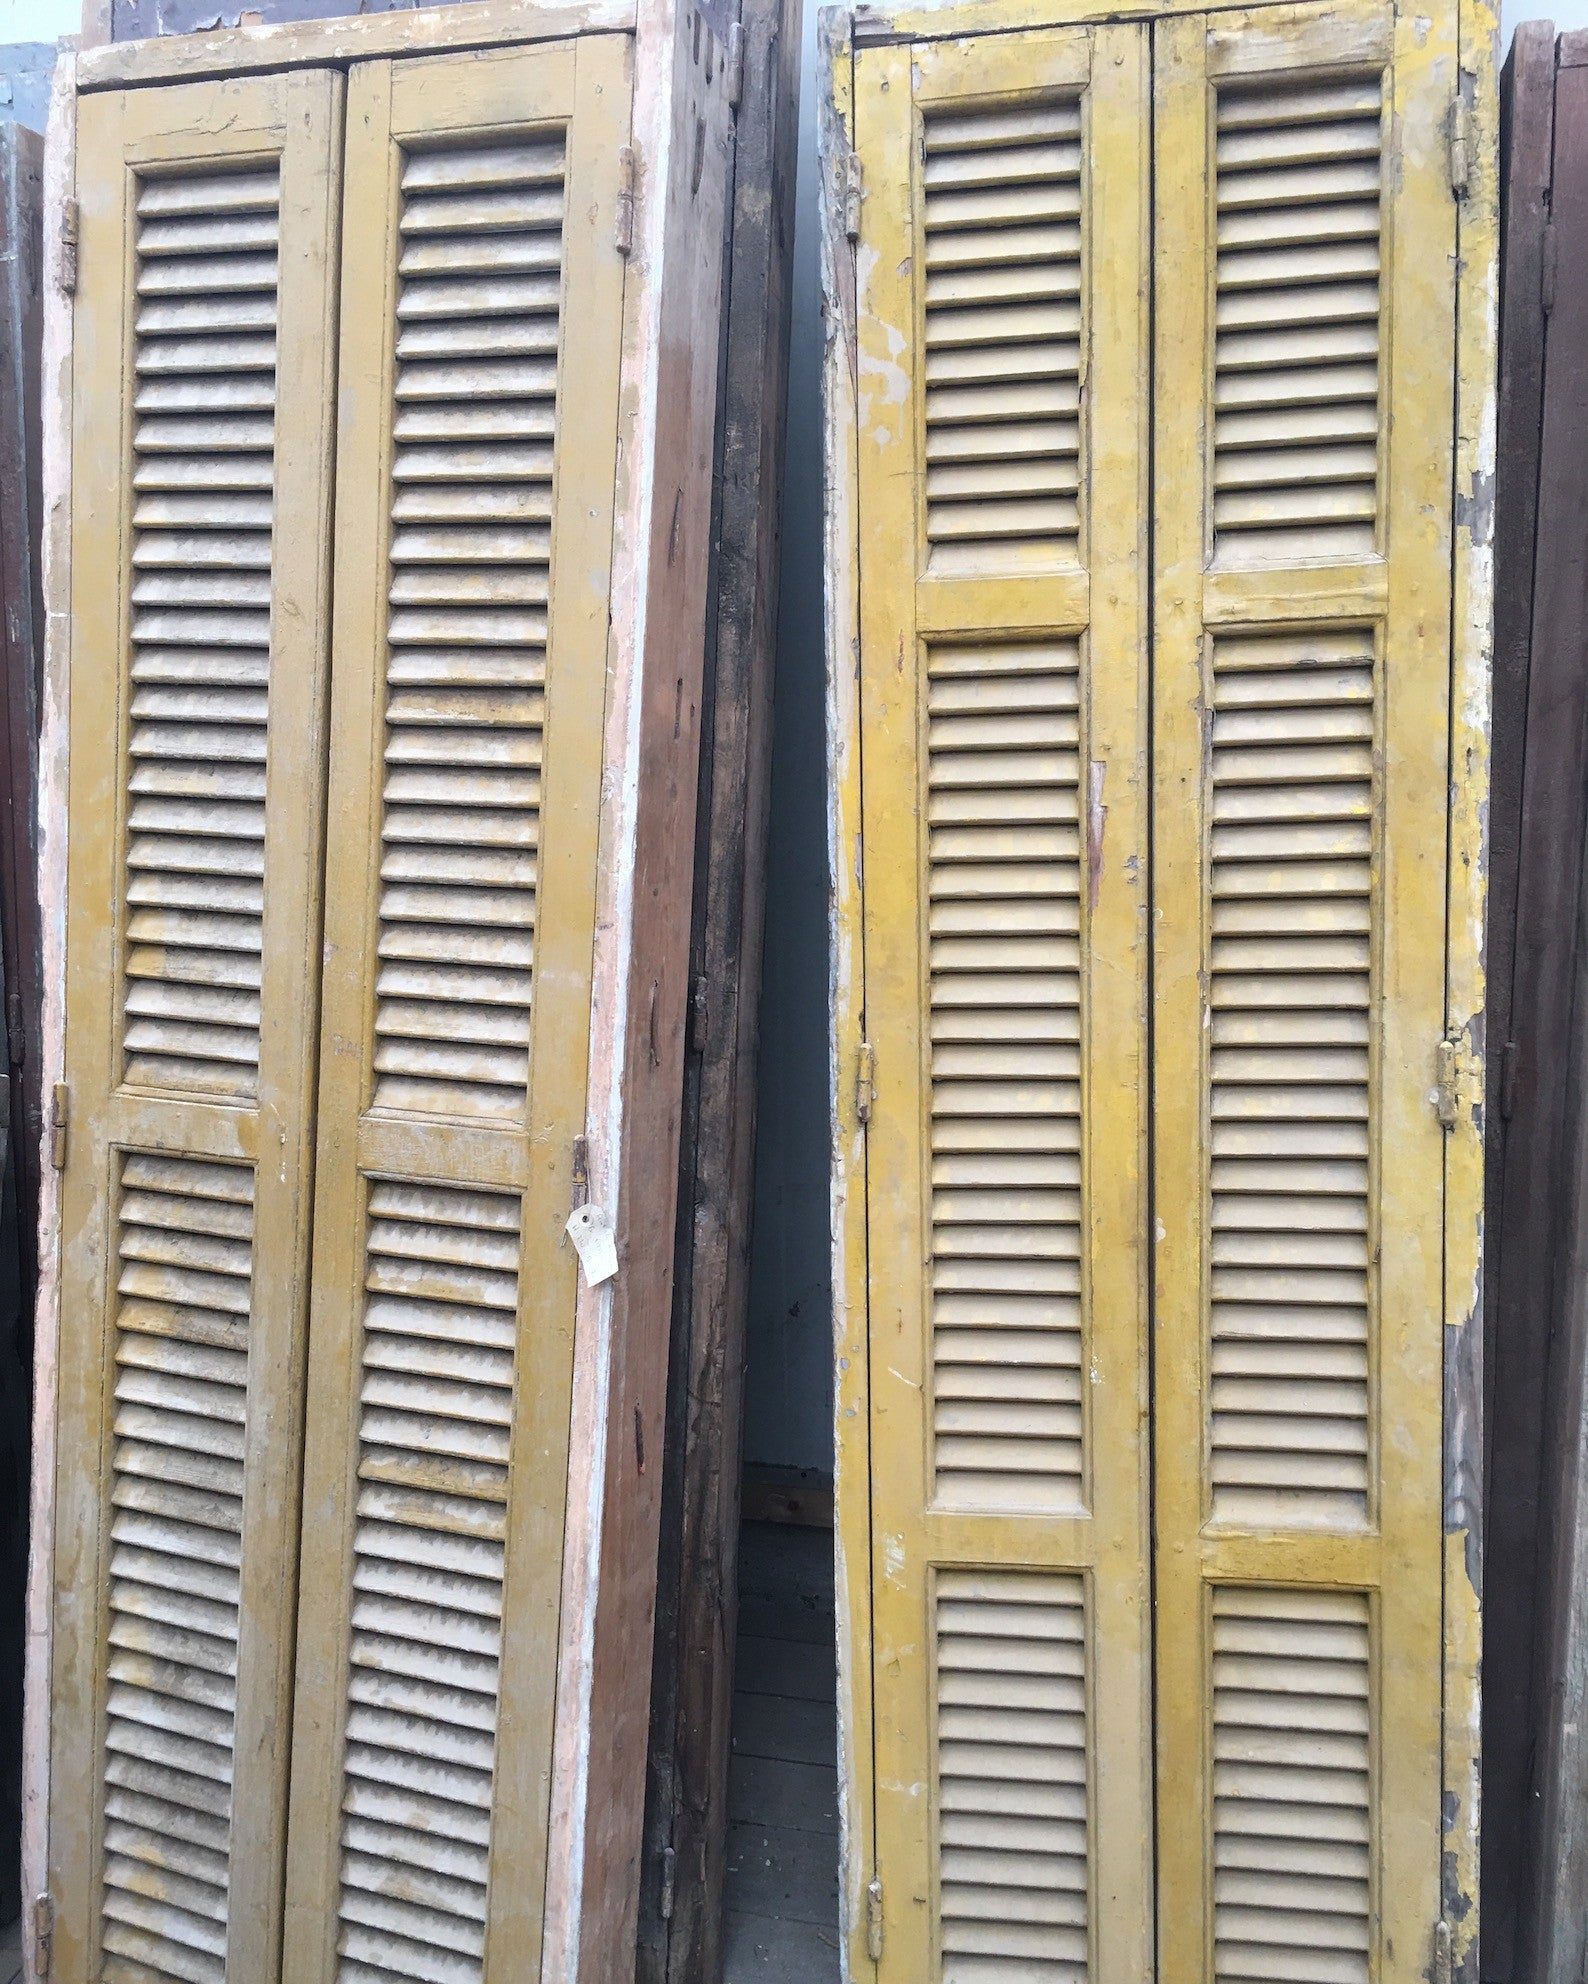 Vintage industrial window shutters and window #1532